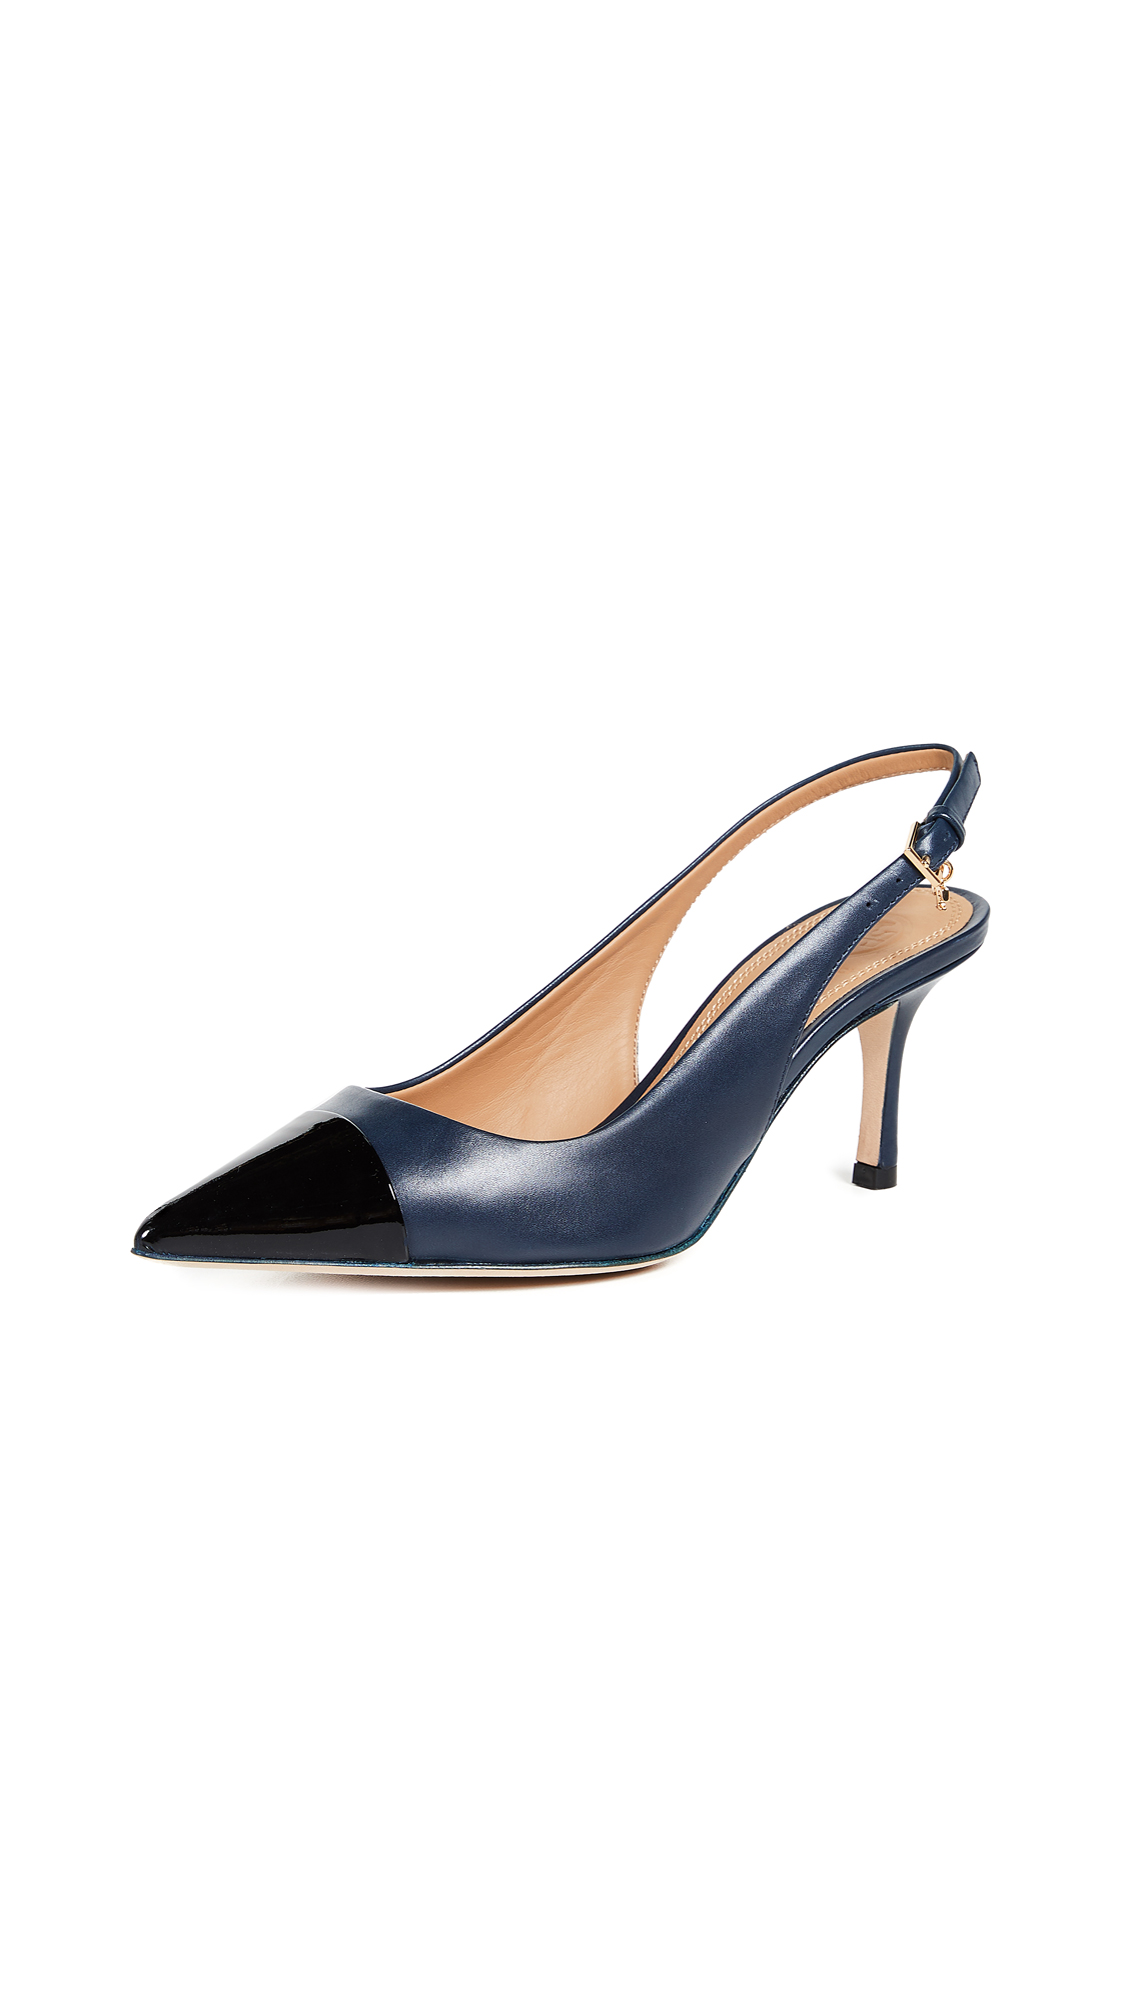 Tory Burch Penelope Cap Toe Slingback Pumps - Perfect Navy/Perfect Black